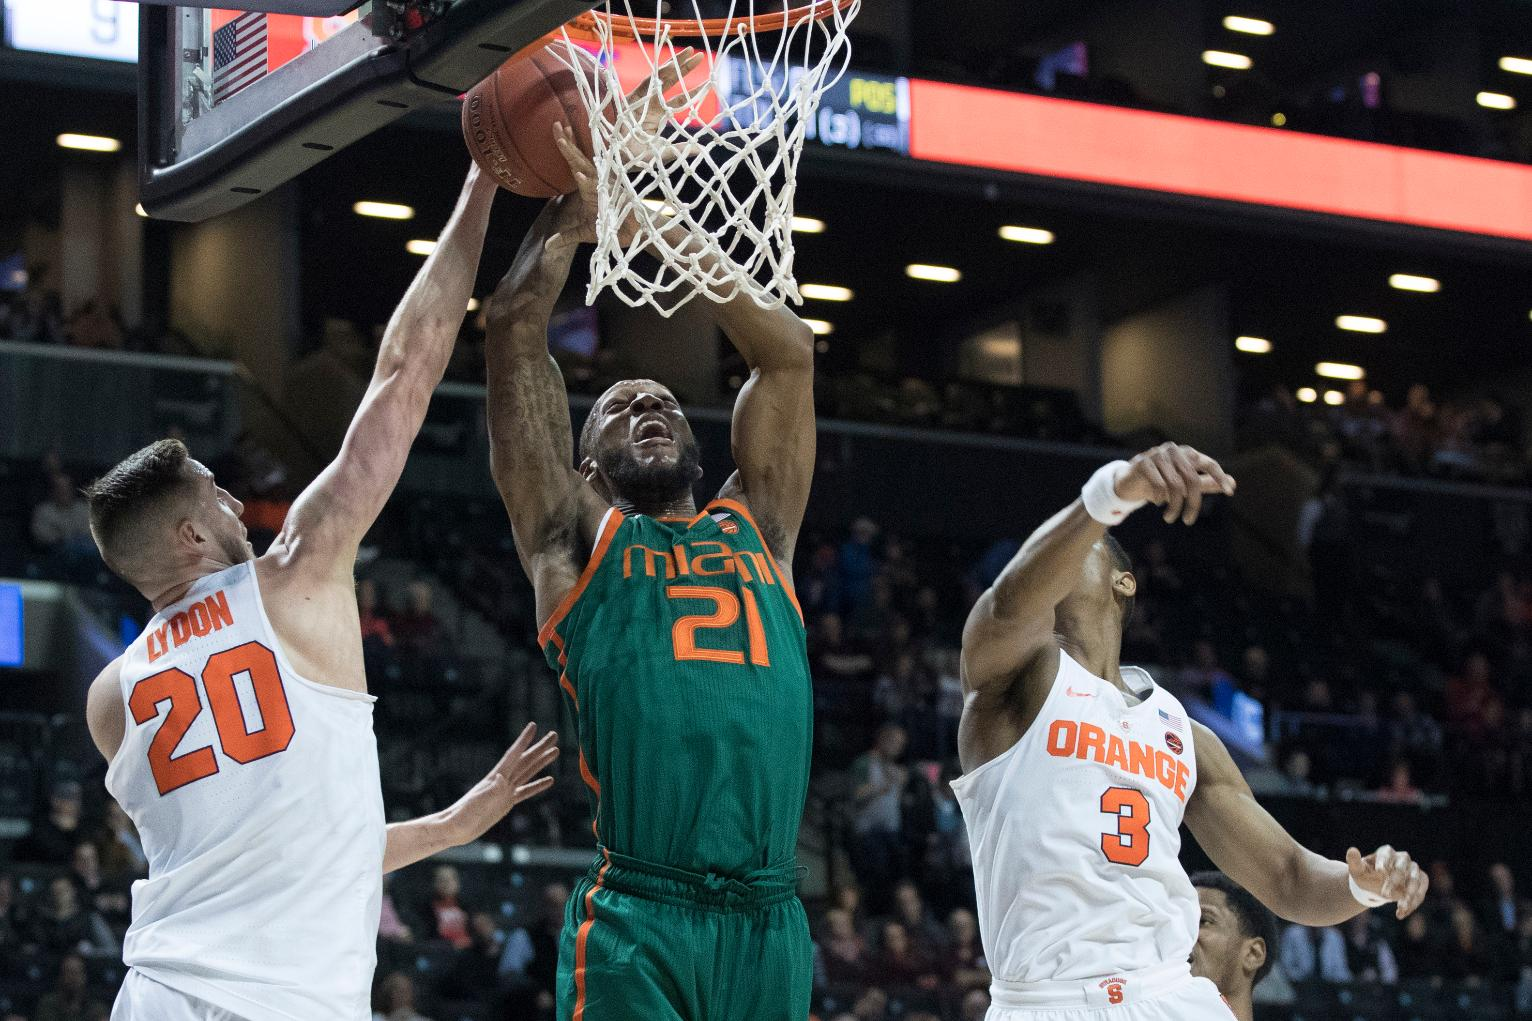 former stevenson police chief reports to federal prison alabama miami beats syracuse 62 57 in acc will face top seed unc